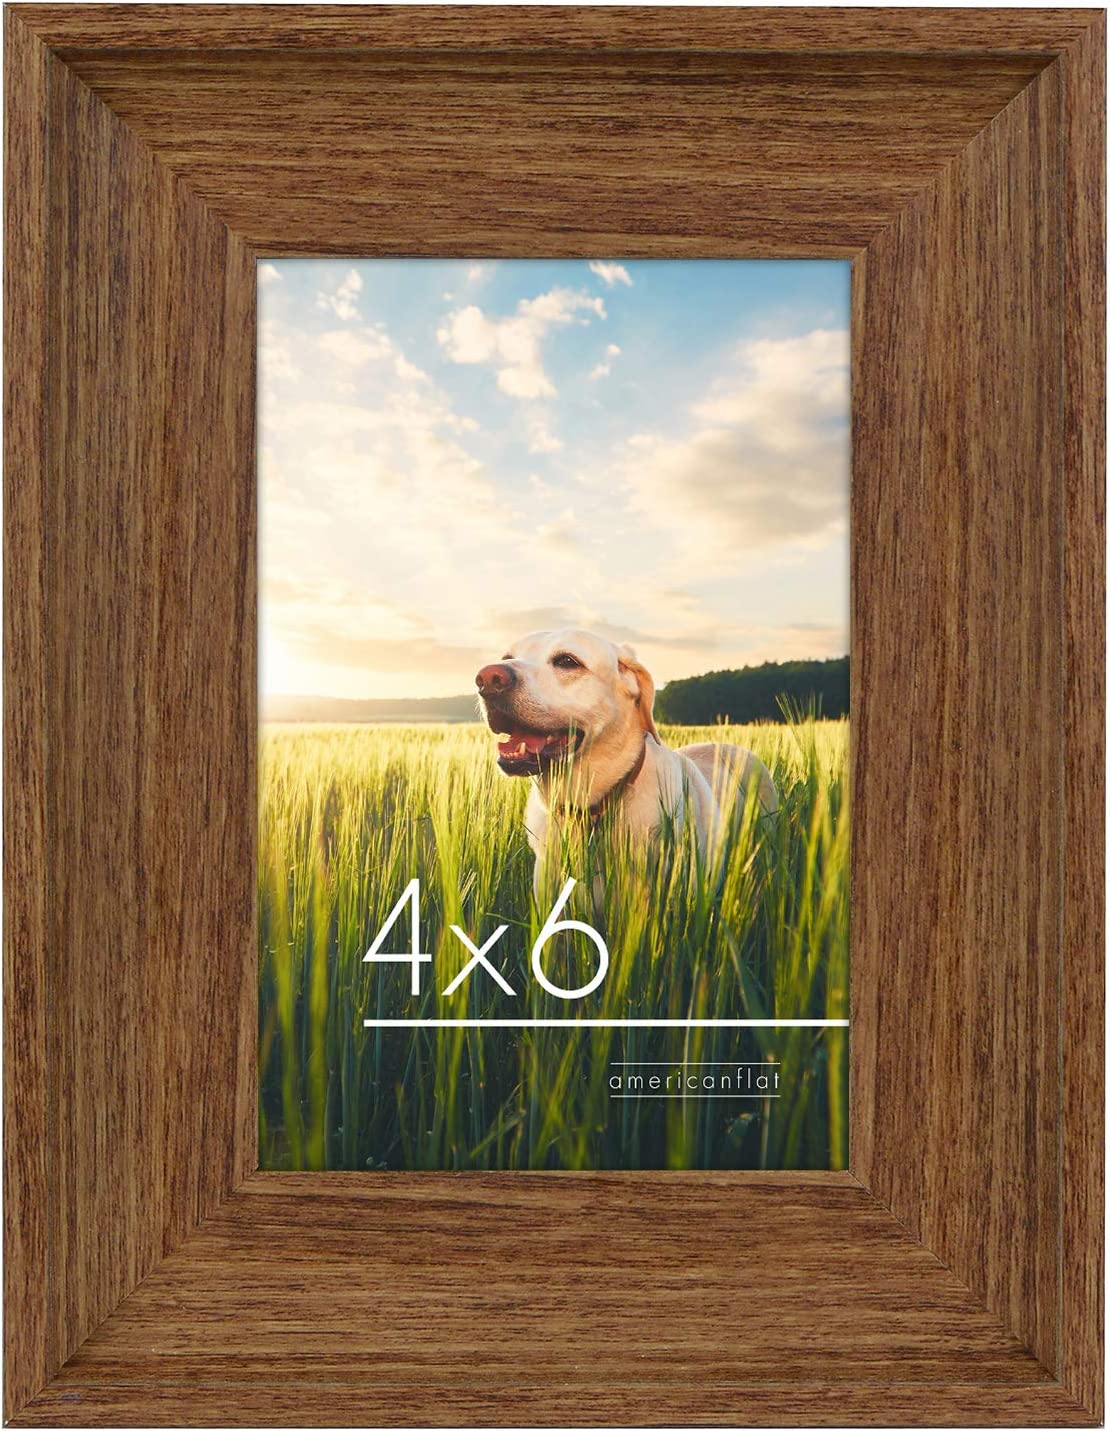 Americanflat 4x6 Rustic Lodge Picture Frame in Walnut Brown - Composite Wood with Polished Glass - Horizontal and Vertical Formats for Wall and Tabletop